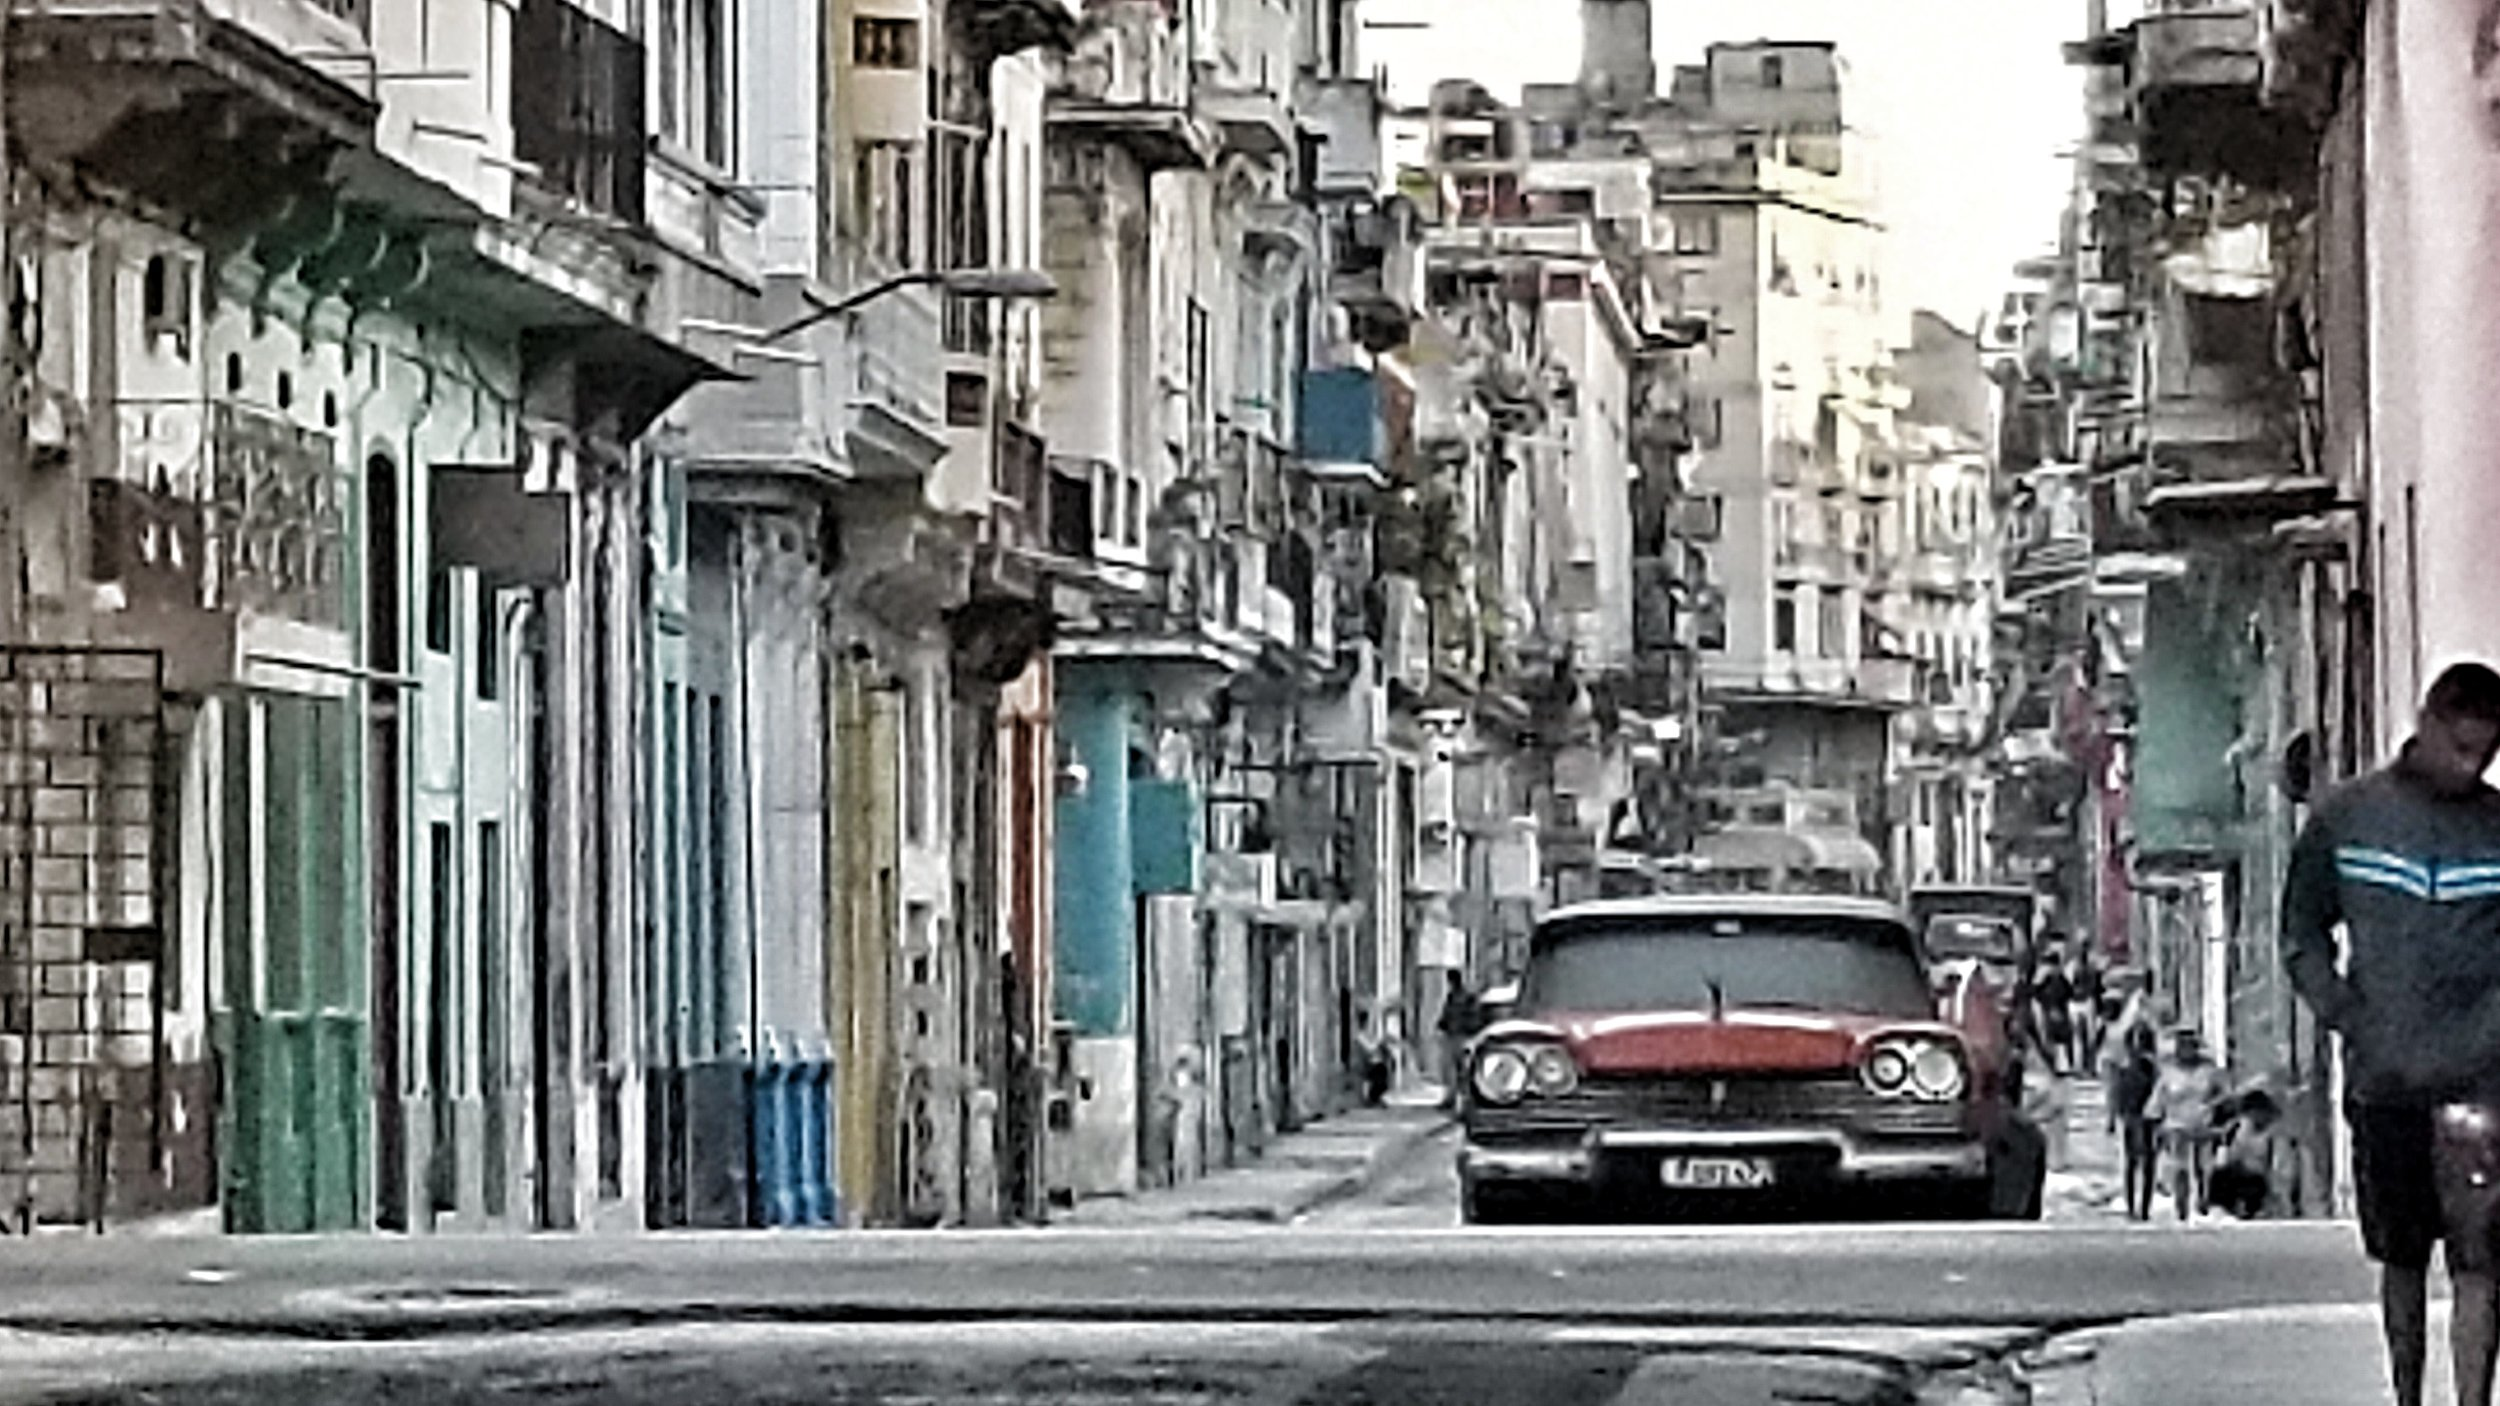 Typical Street scene in old Habana Cuba